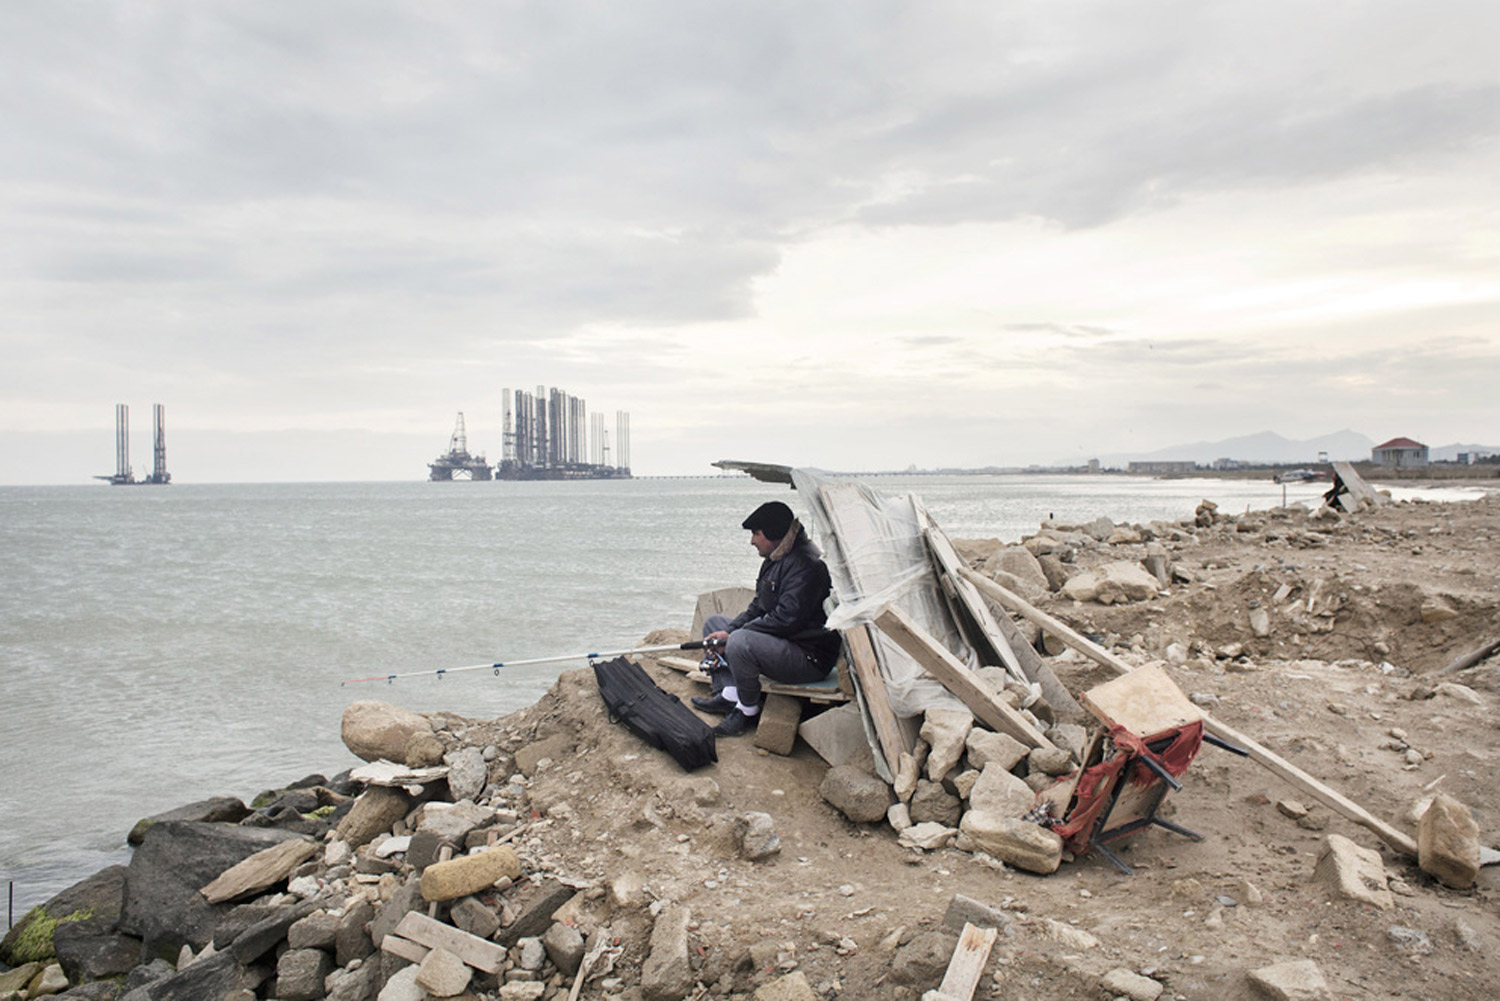 A man fishes at Sahil beach near Baku, Azerbaijan, 2010.